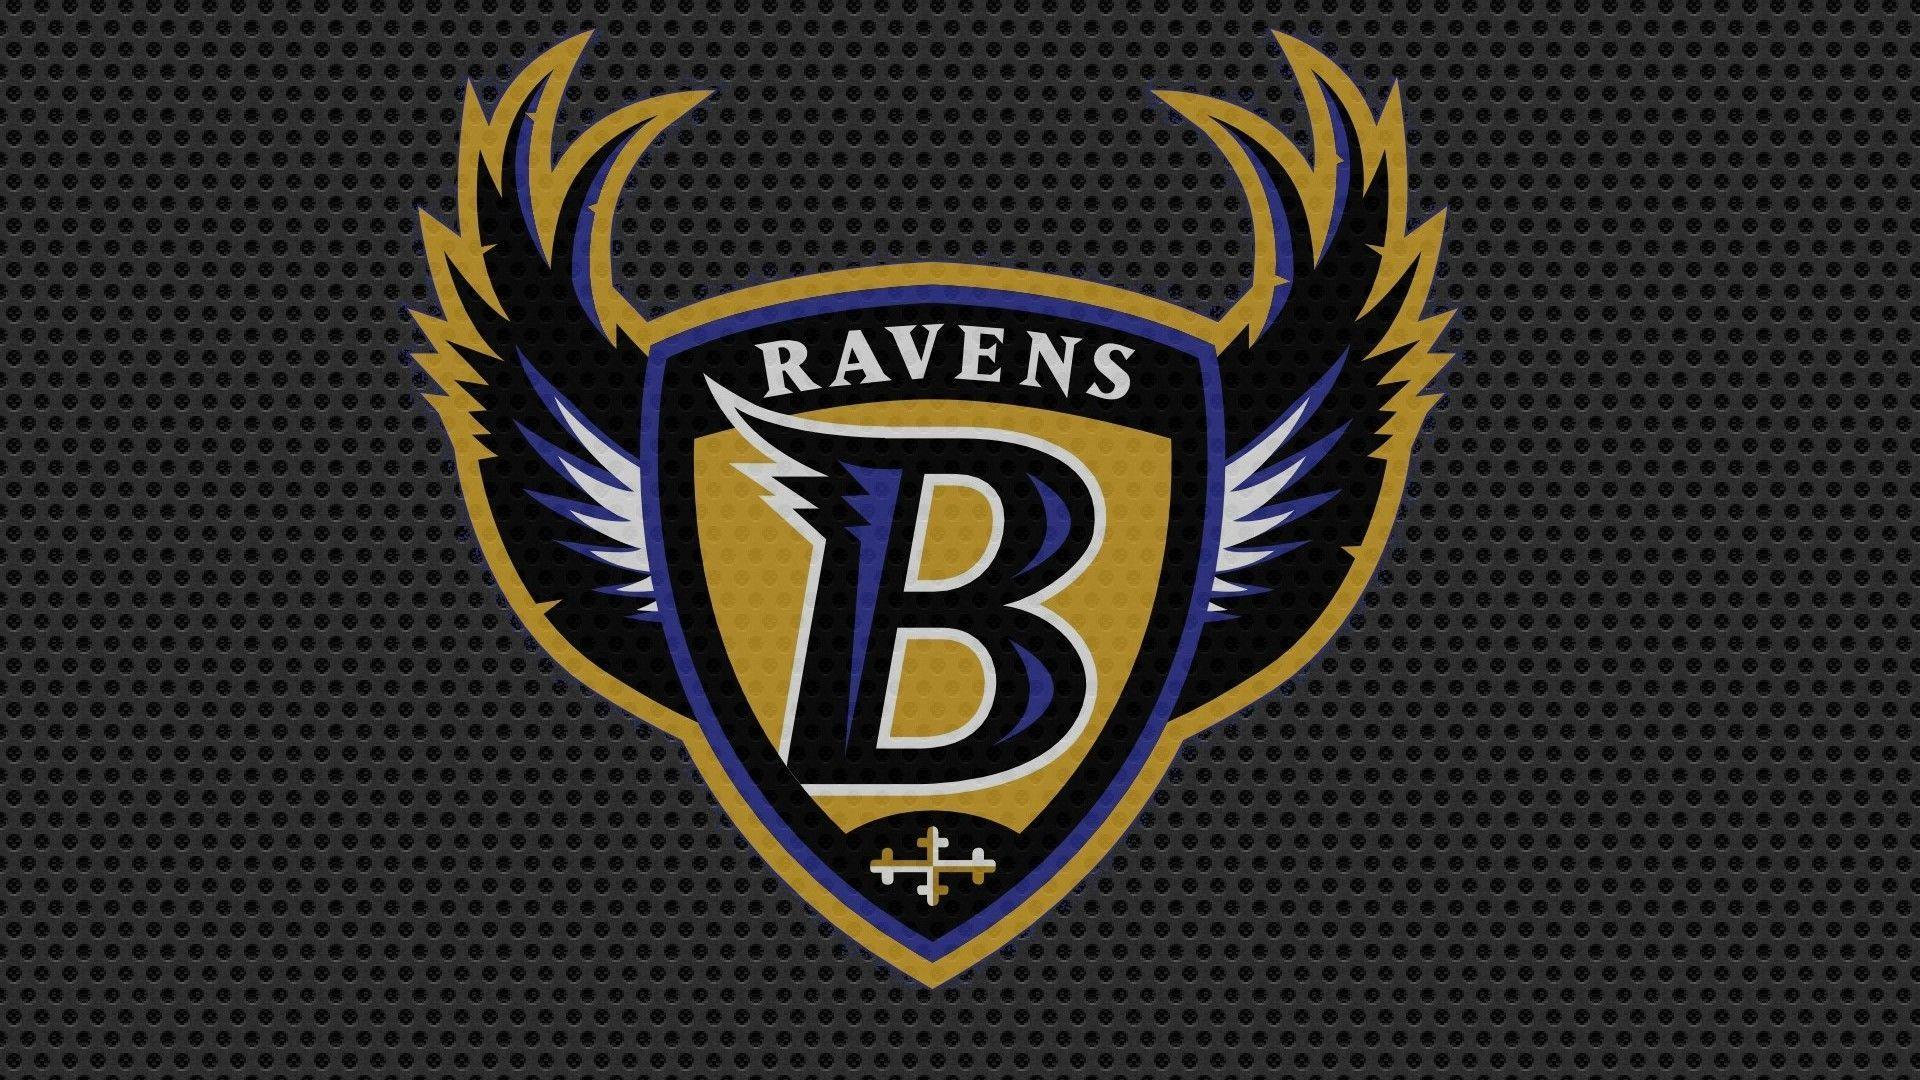 Backgrounds Baltimore Ravens HD